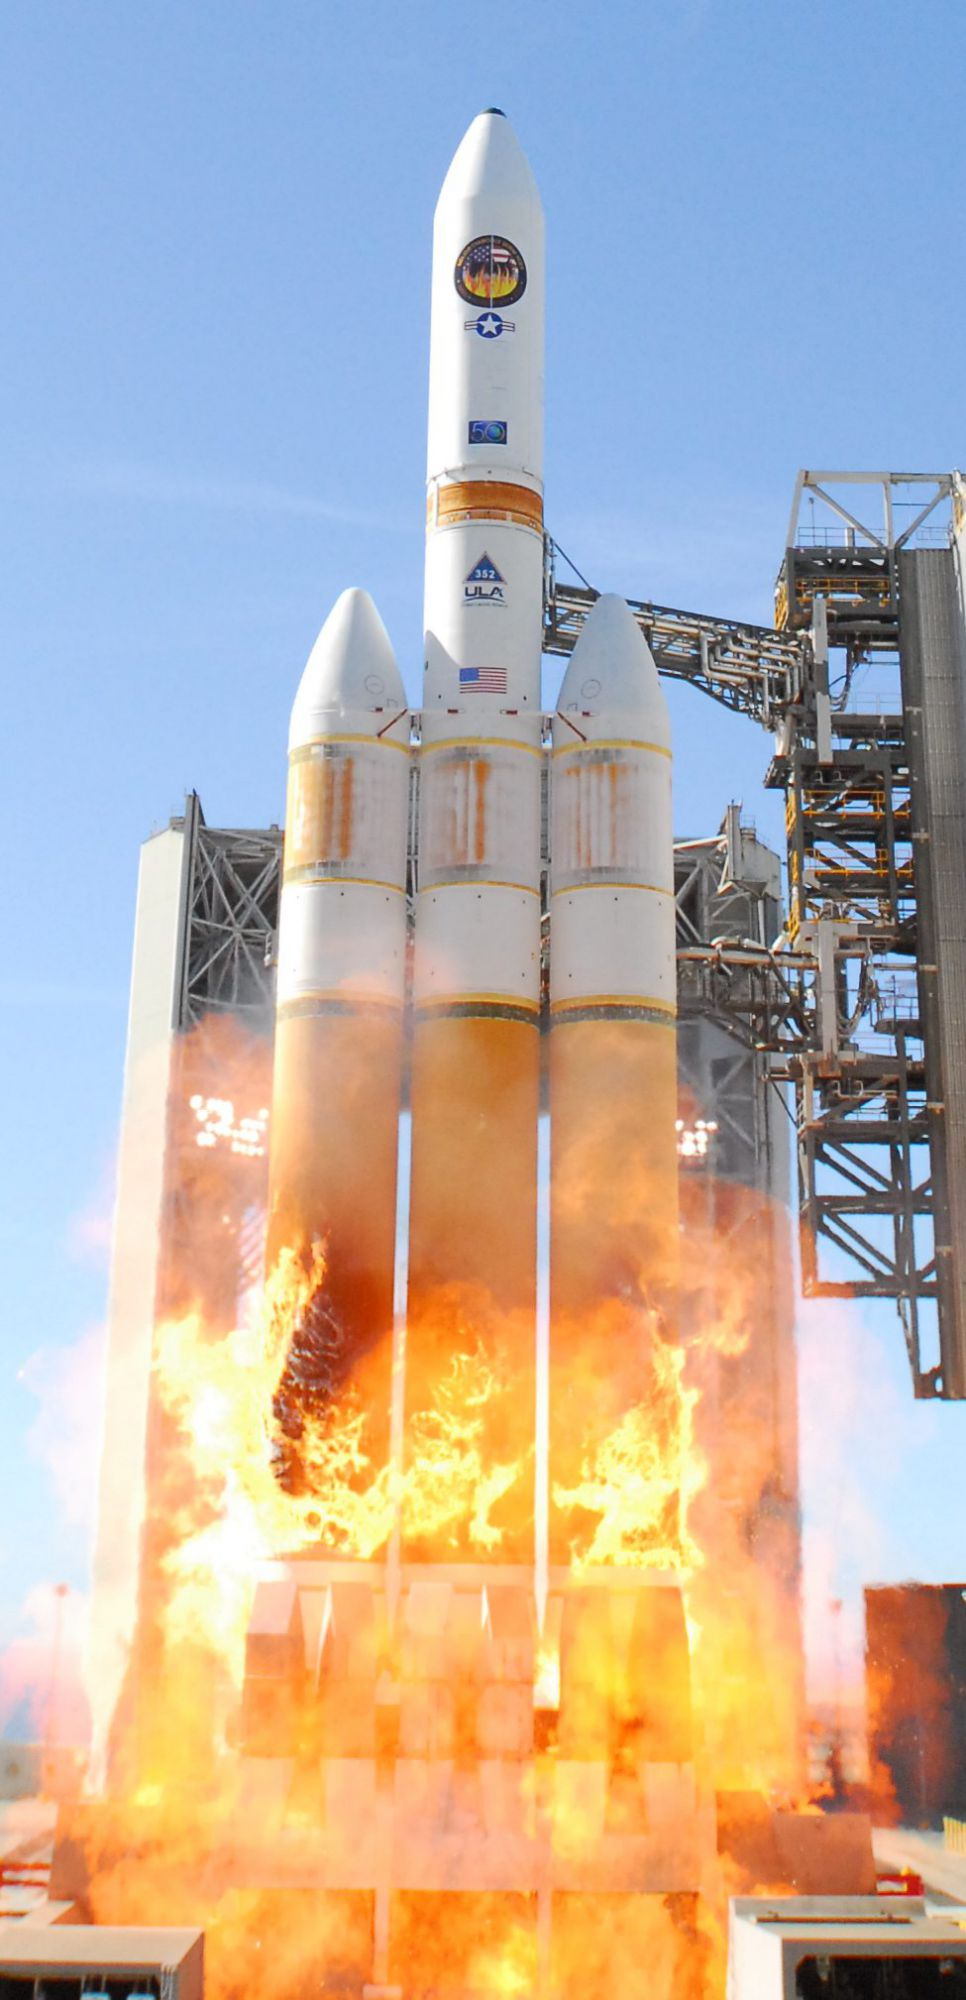 The launch of Delta IV Heavy with USA-224 aboard, an American reconnaissance satellite, on 20 January 2011. Credits DR.